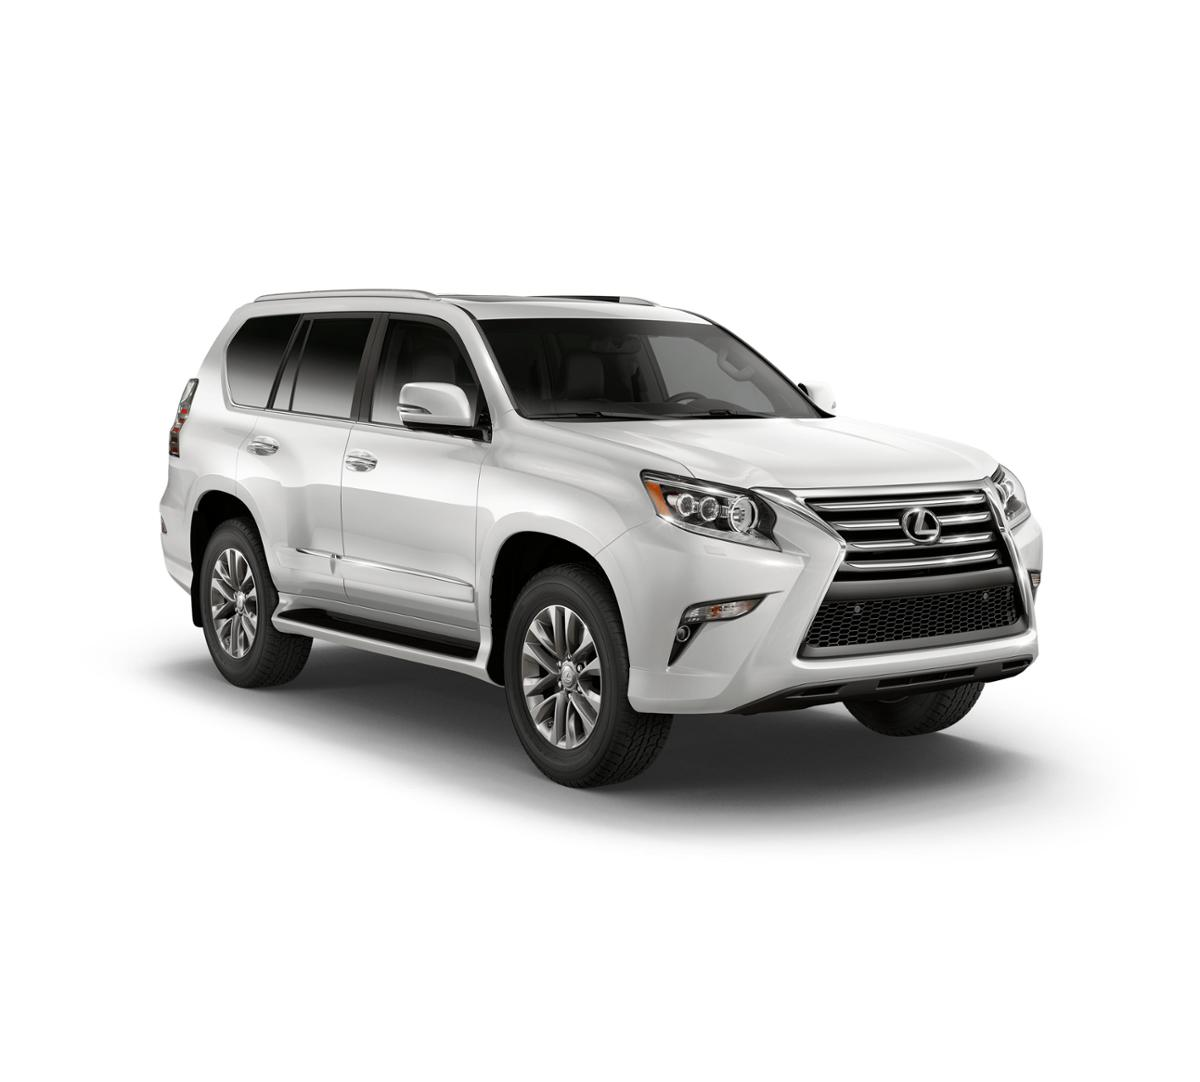 Larry h miller lexus spokane - 2017 Lexus Gx 460 Vehicle Photo In Spokane Wa 99201